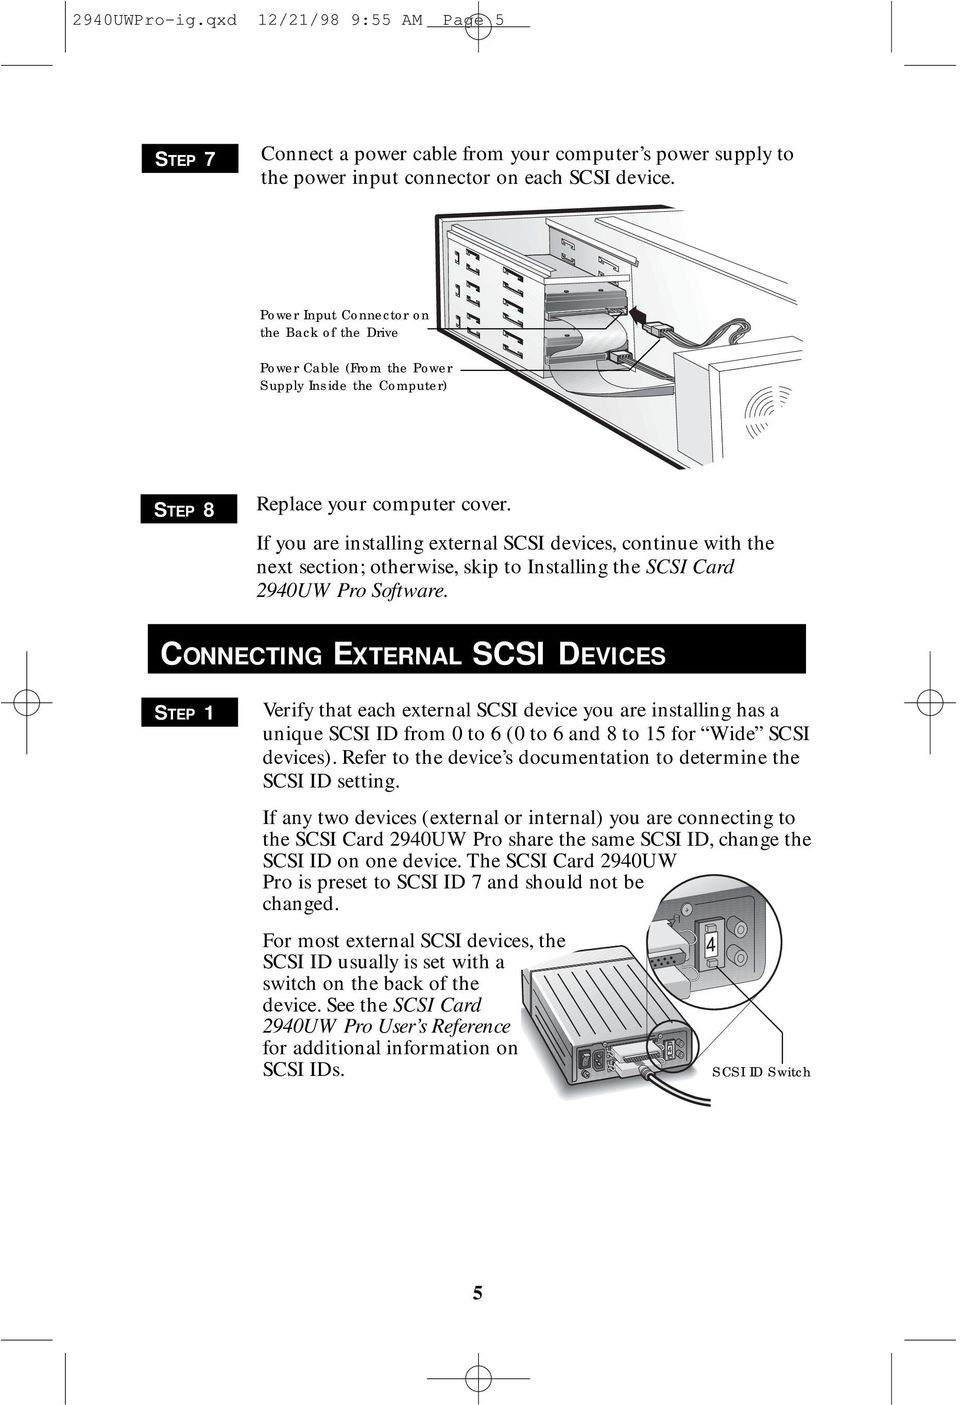 If you are installing external SCSI devices, continue with the next section; otherwise, skip to Installing the SCSI Card 2940UW Pro Software.